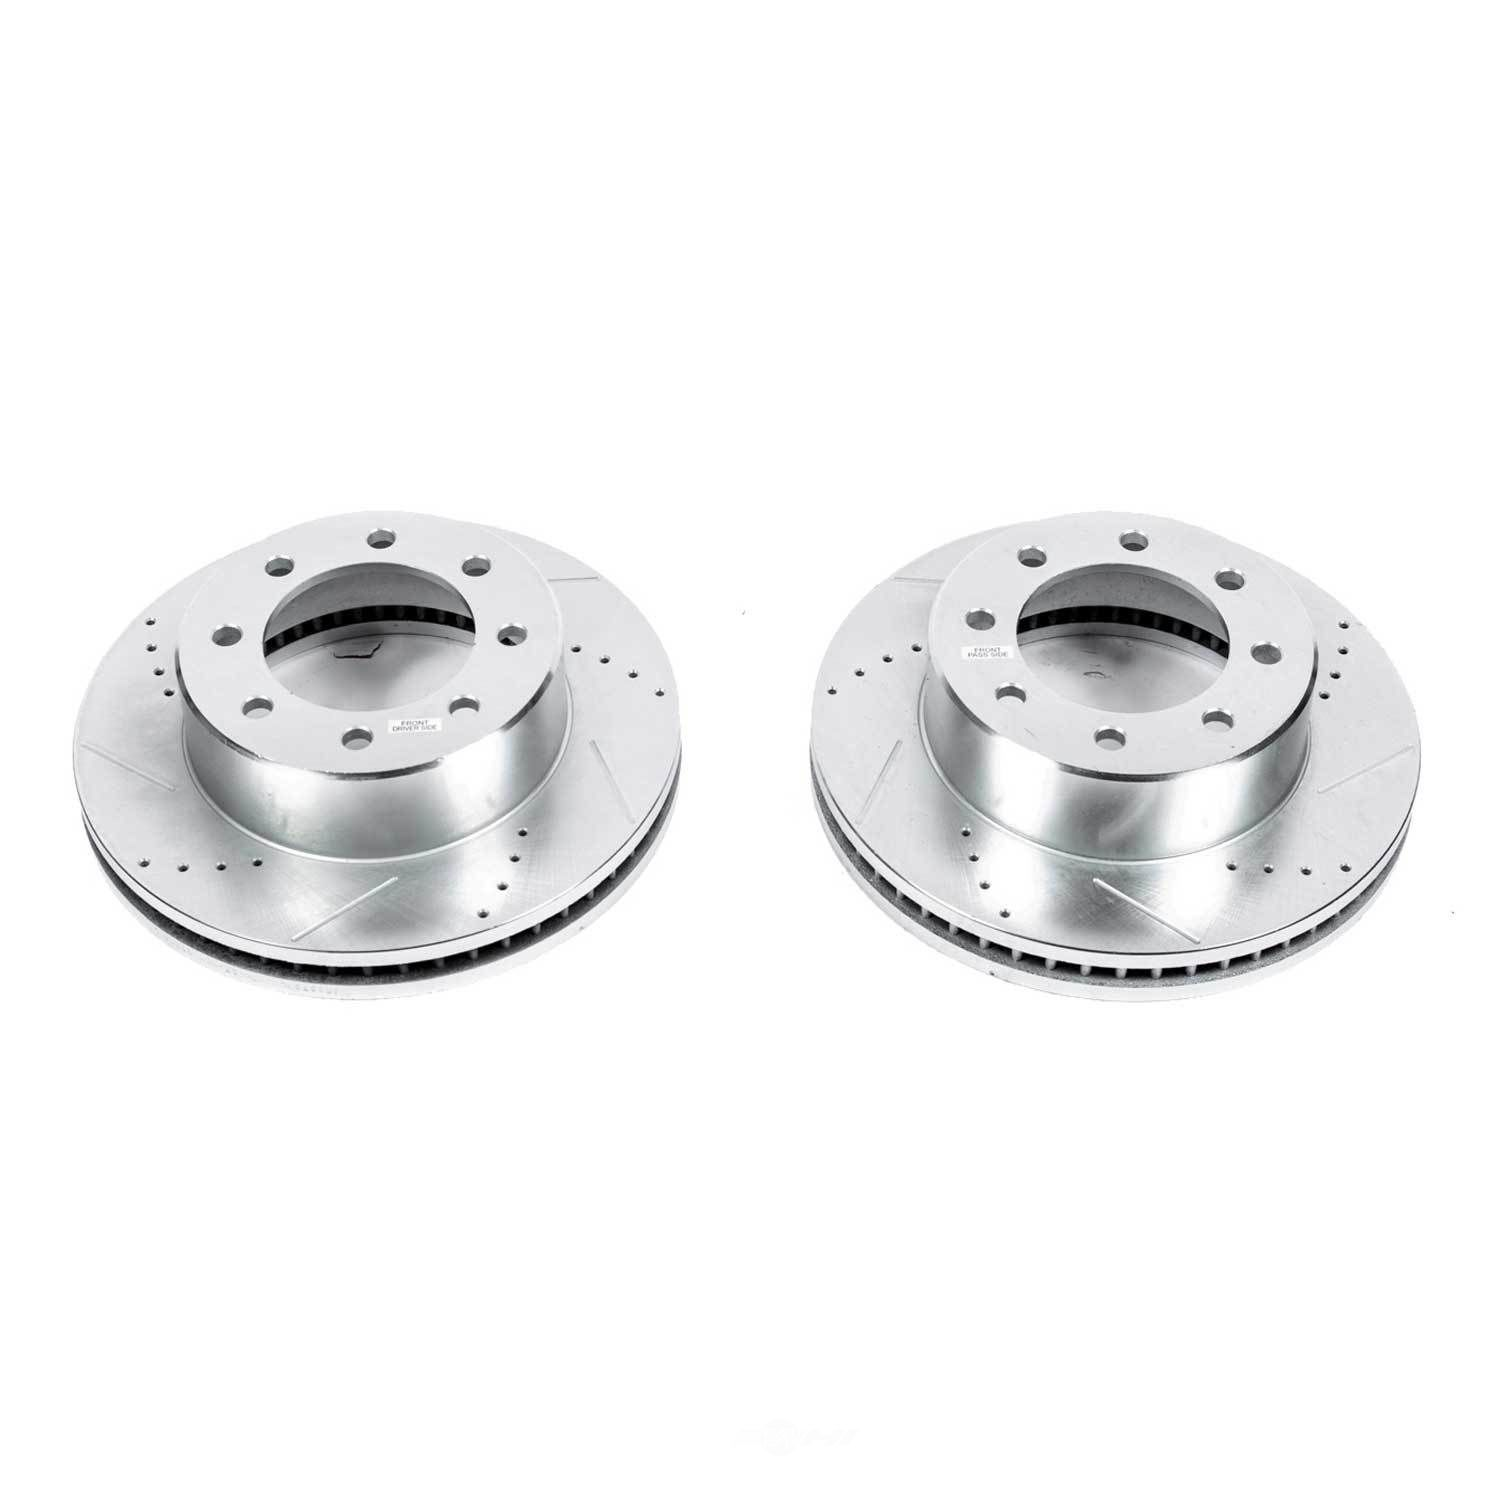 POWER STOP - Extreme Performance Drilled & Slotted Brake Rotor (Front) - PWS AR8373XPR